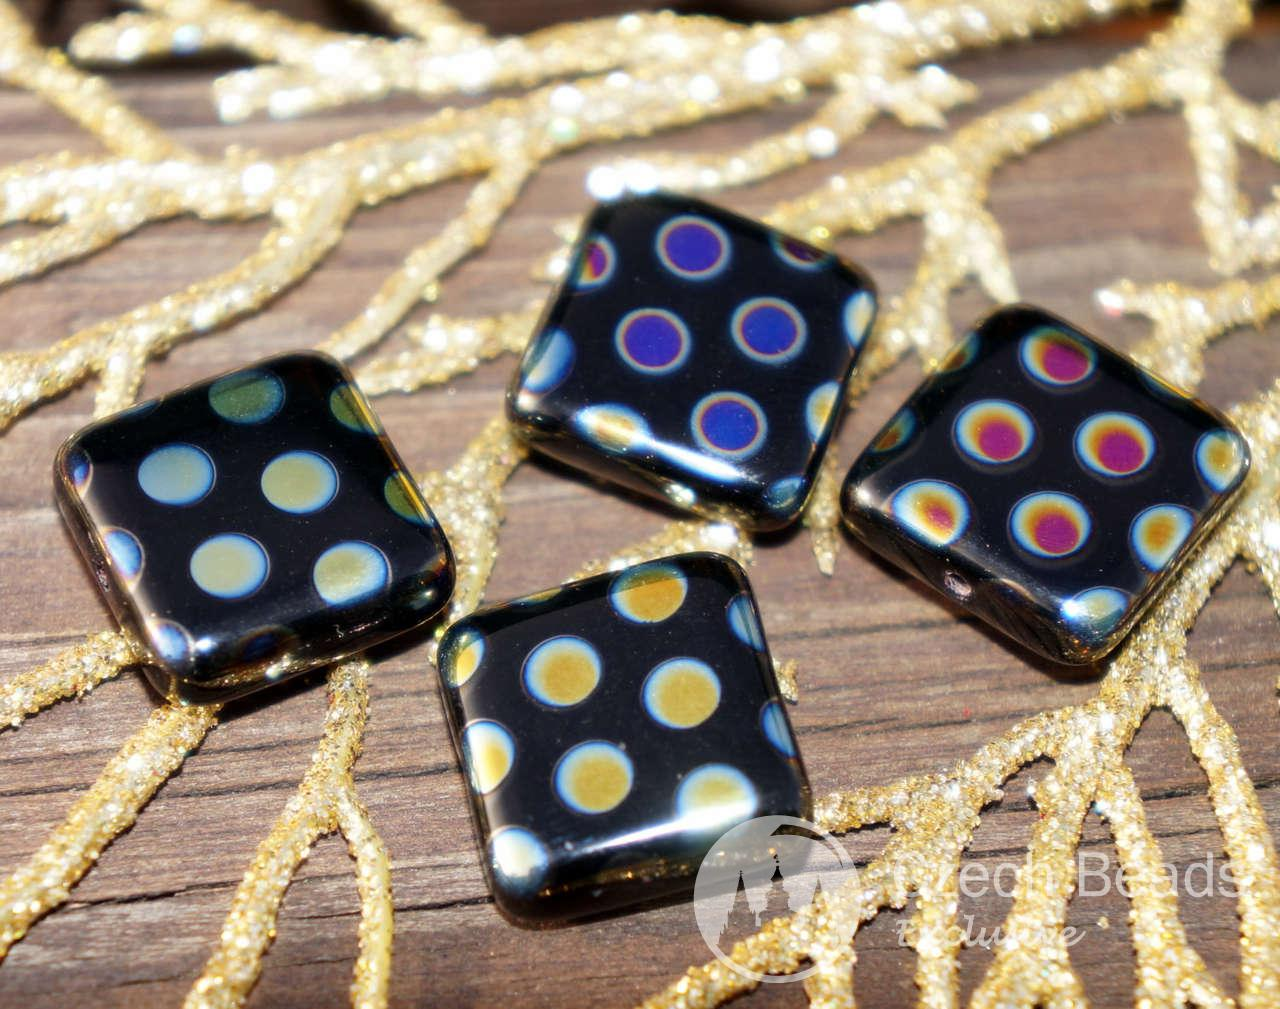 Black Peacock Beads AB Beads Large Flat Square Glass Beads Square Czech Glass Beads Czech Beads Exclusive Czech Flat Square Beads 13mm 2pc